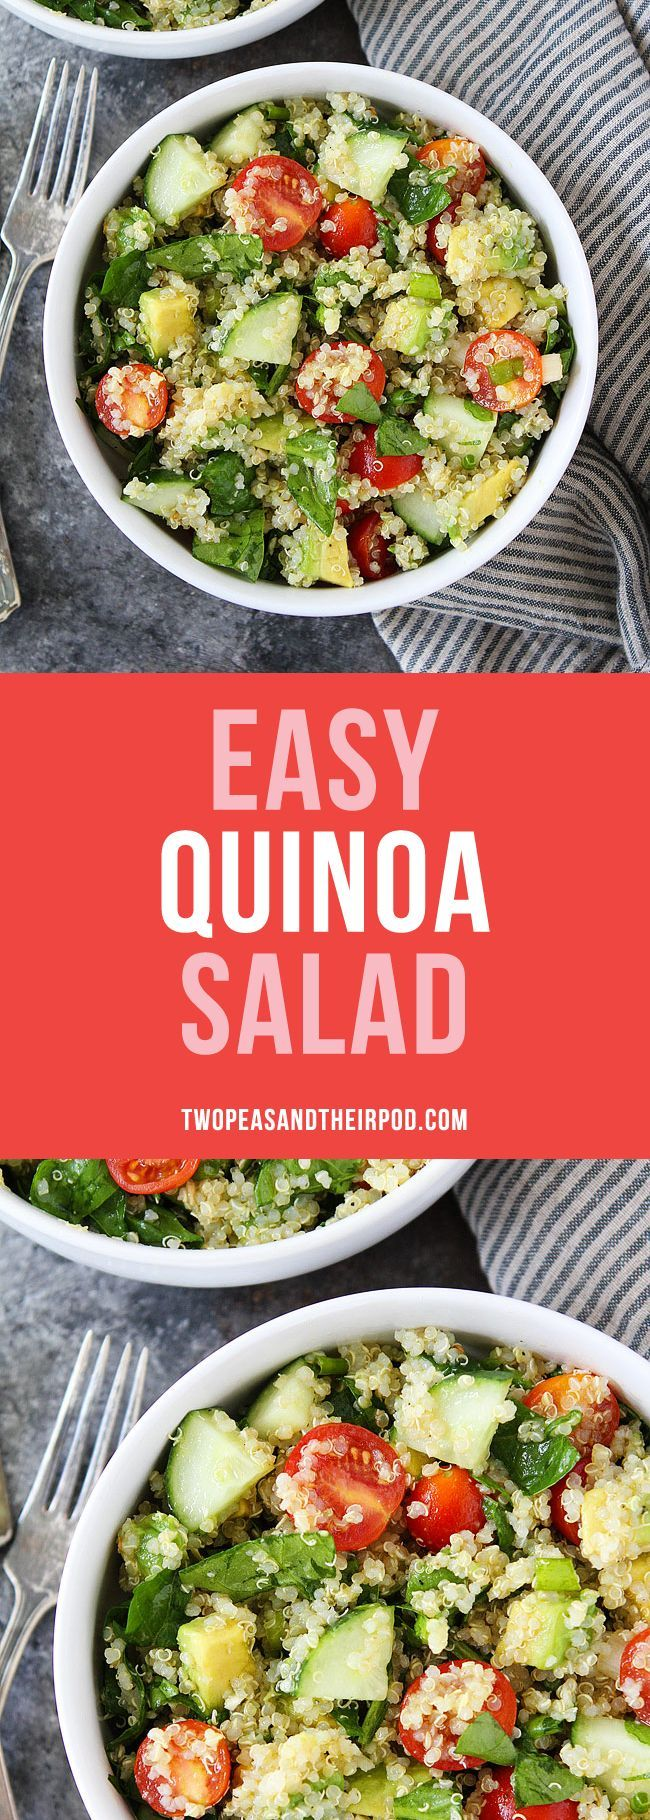 This Easy Quinoa Salad is the BEST quinoa salad recipe! It is great for lunch, dinner, or the perfect side dish for potlucks and parties. You will love this healthy vegan and gluten free salad. #salad #quinoa